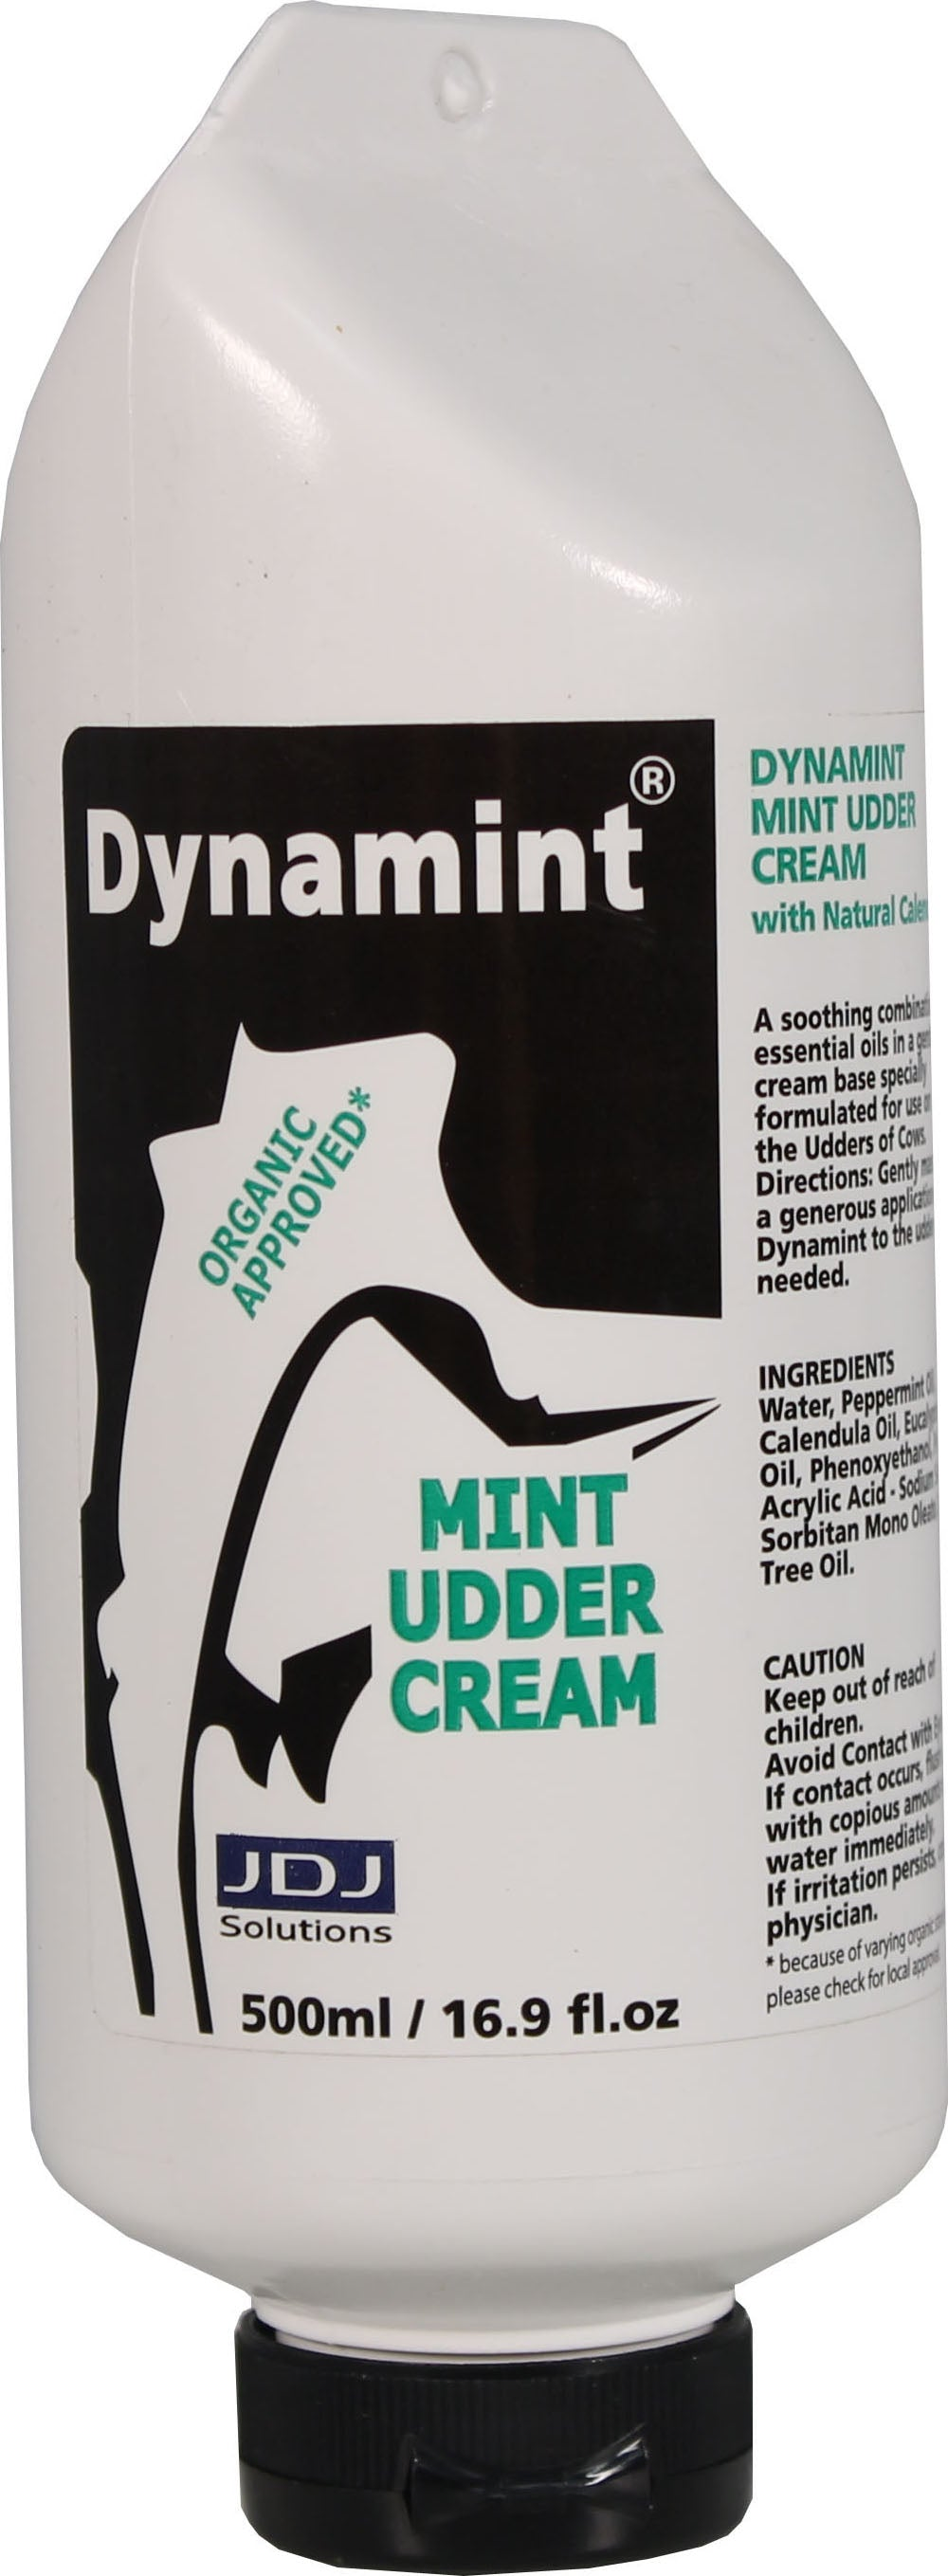 Dynamint Mint Udder Cream Hang Bottle